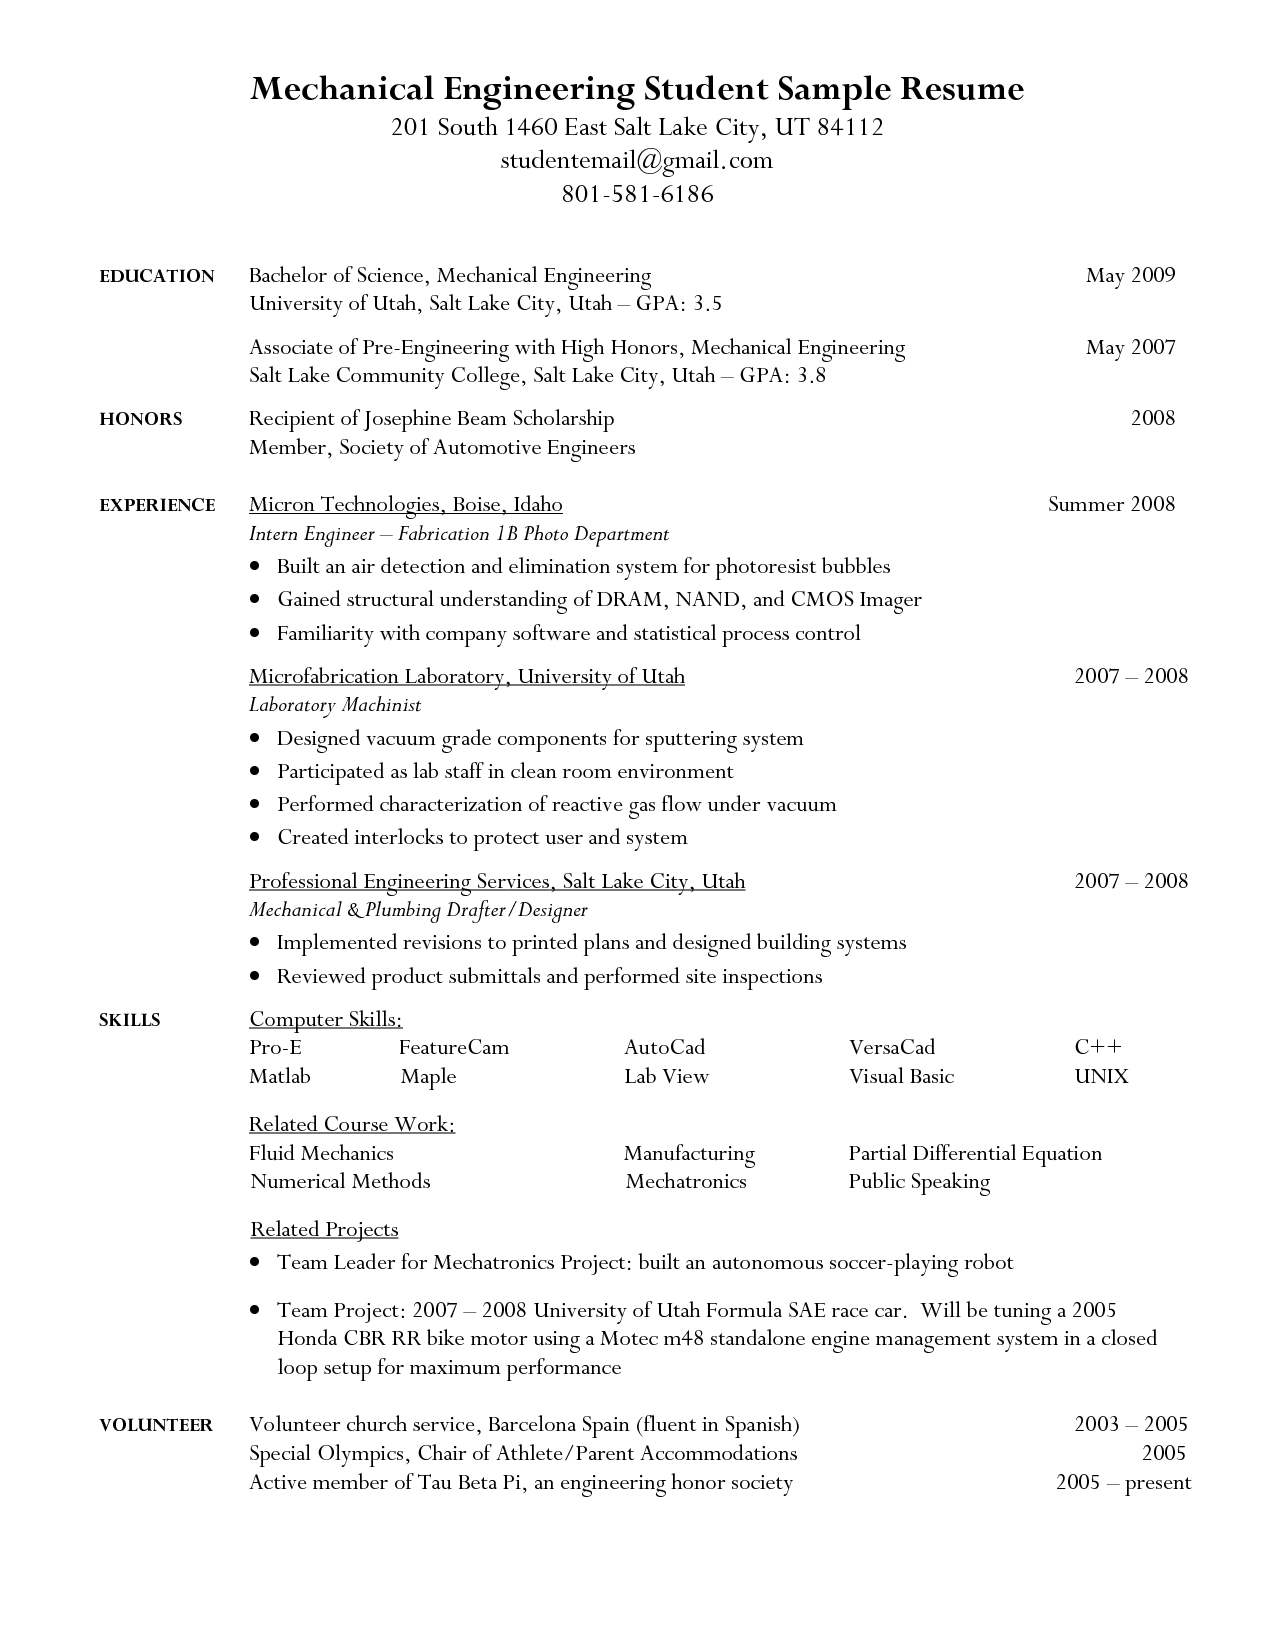 Resume Sample For College Student Engineering Student Resume Google Search Resumes